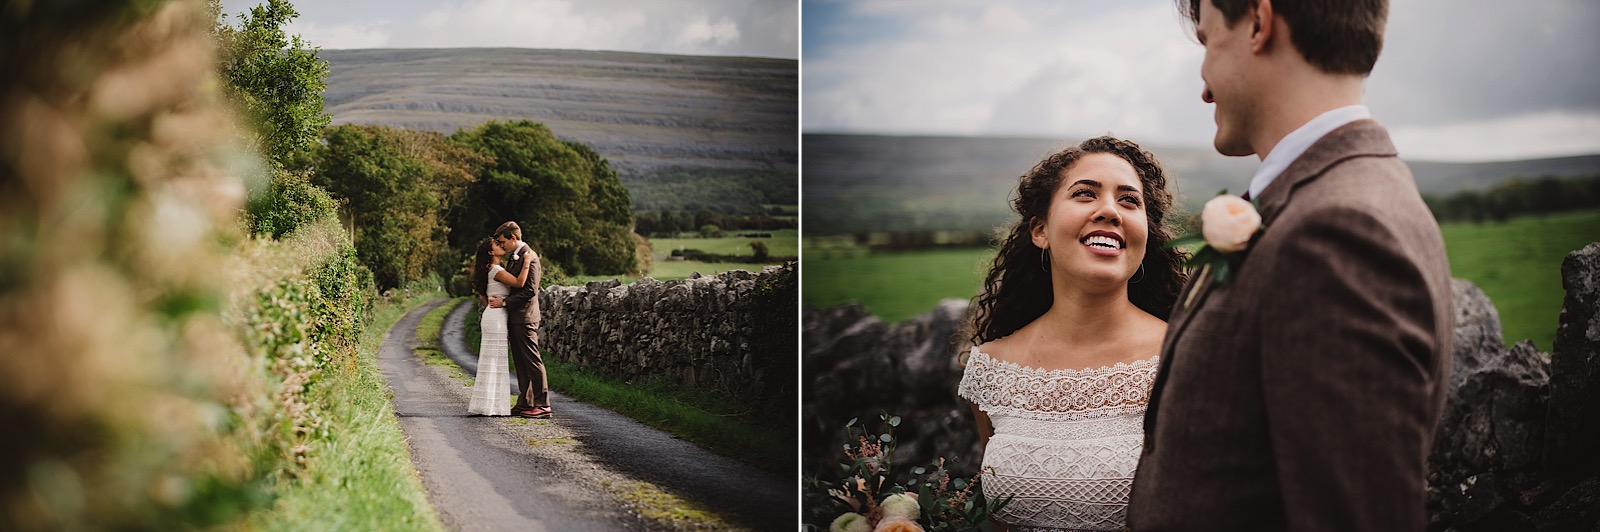 Elopement_Wedding_Ireland_Cliffs_of_moher0031